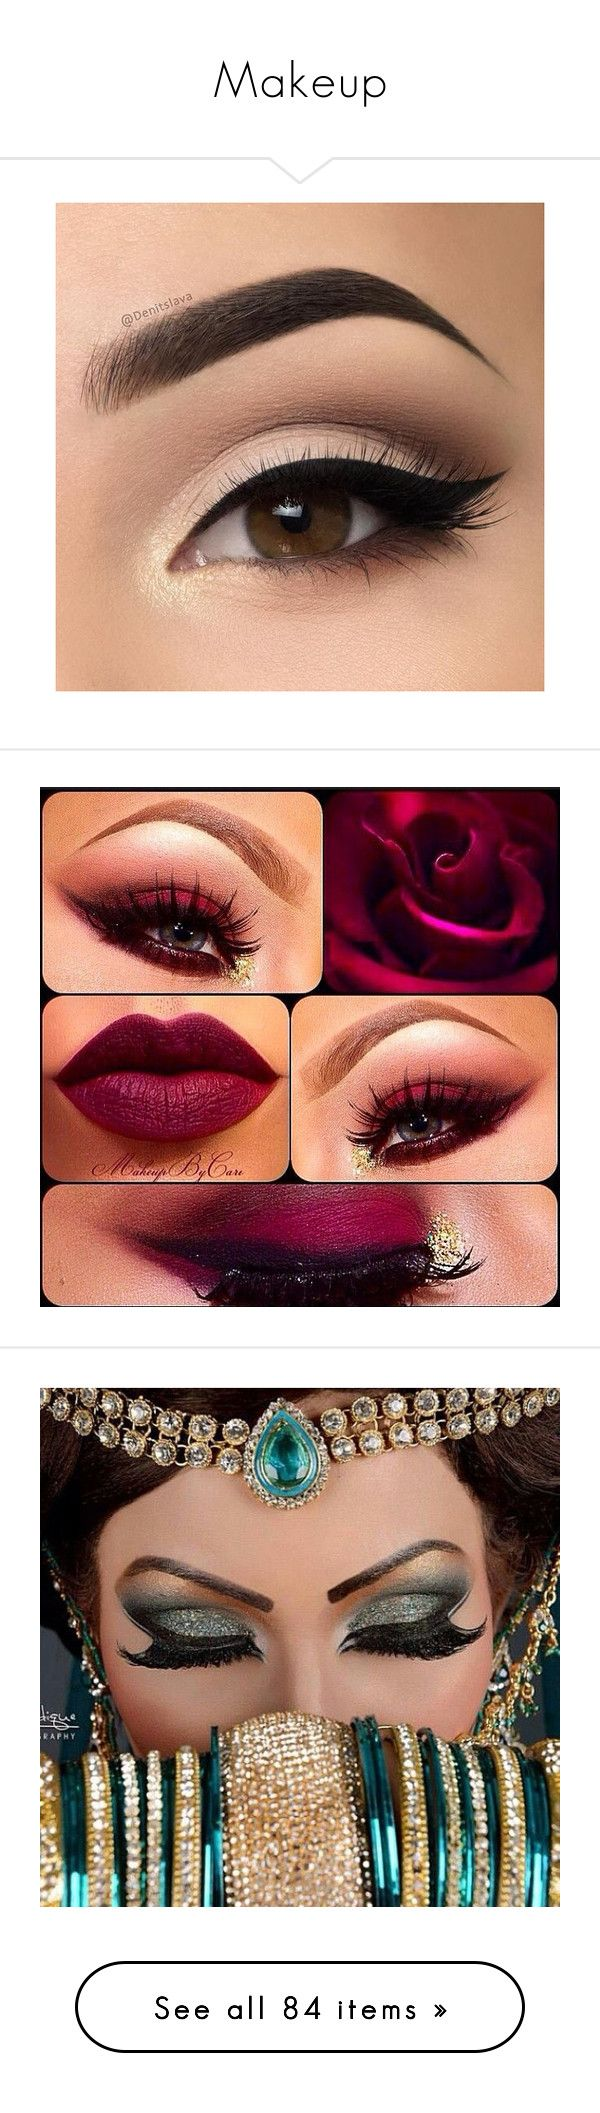 """""""Makeup"""" by pierce-the-falling-sirens ❤ liked on Polyvore featuring beauty products, makeup, eyes, lips, beauty, eye makeup, face makeup, cleopatra, filler and brow makeup"""